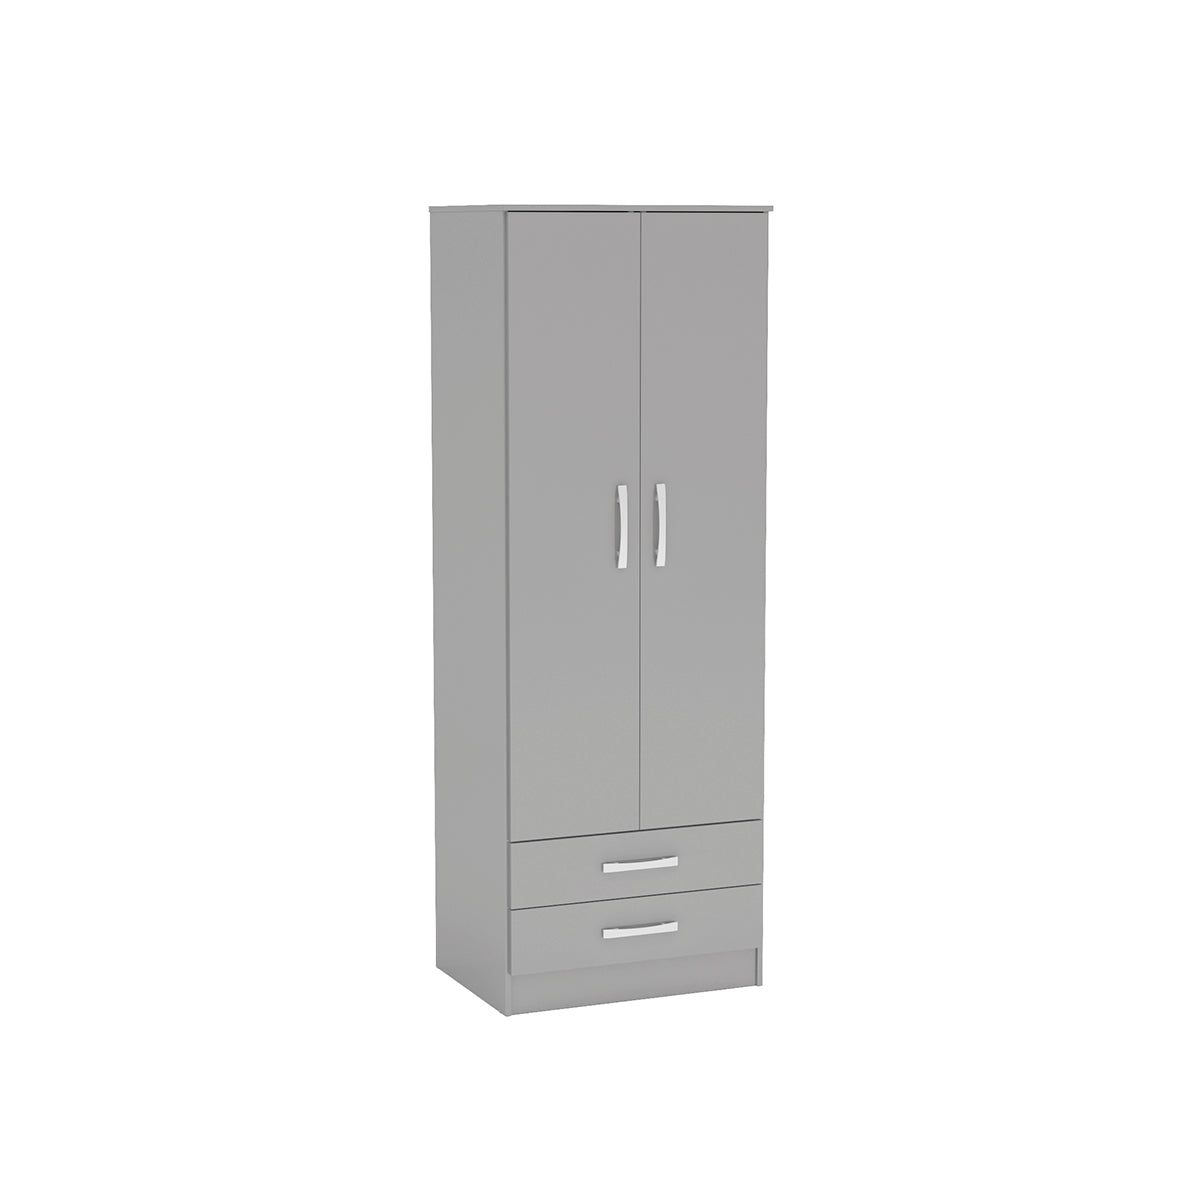 Heath 2 Door Combi Wardrobe in Grey